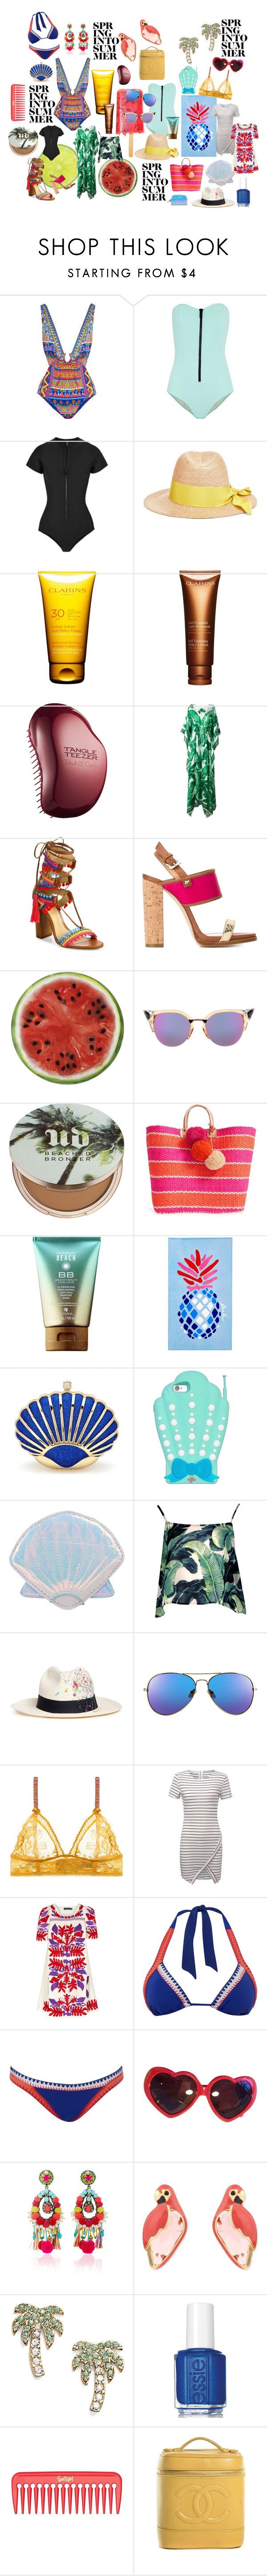 """""""Just Cant Get Enough"""" by sveaw on Polyvore featuring Camilla, Lisa Marie Fernandez, Federica Moretti, Clarins, Tangle Teezer, Dolce&Gabbana, Schutz, Dsquared2, Round Towel Co. and Fendi"""